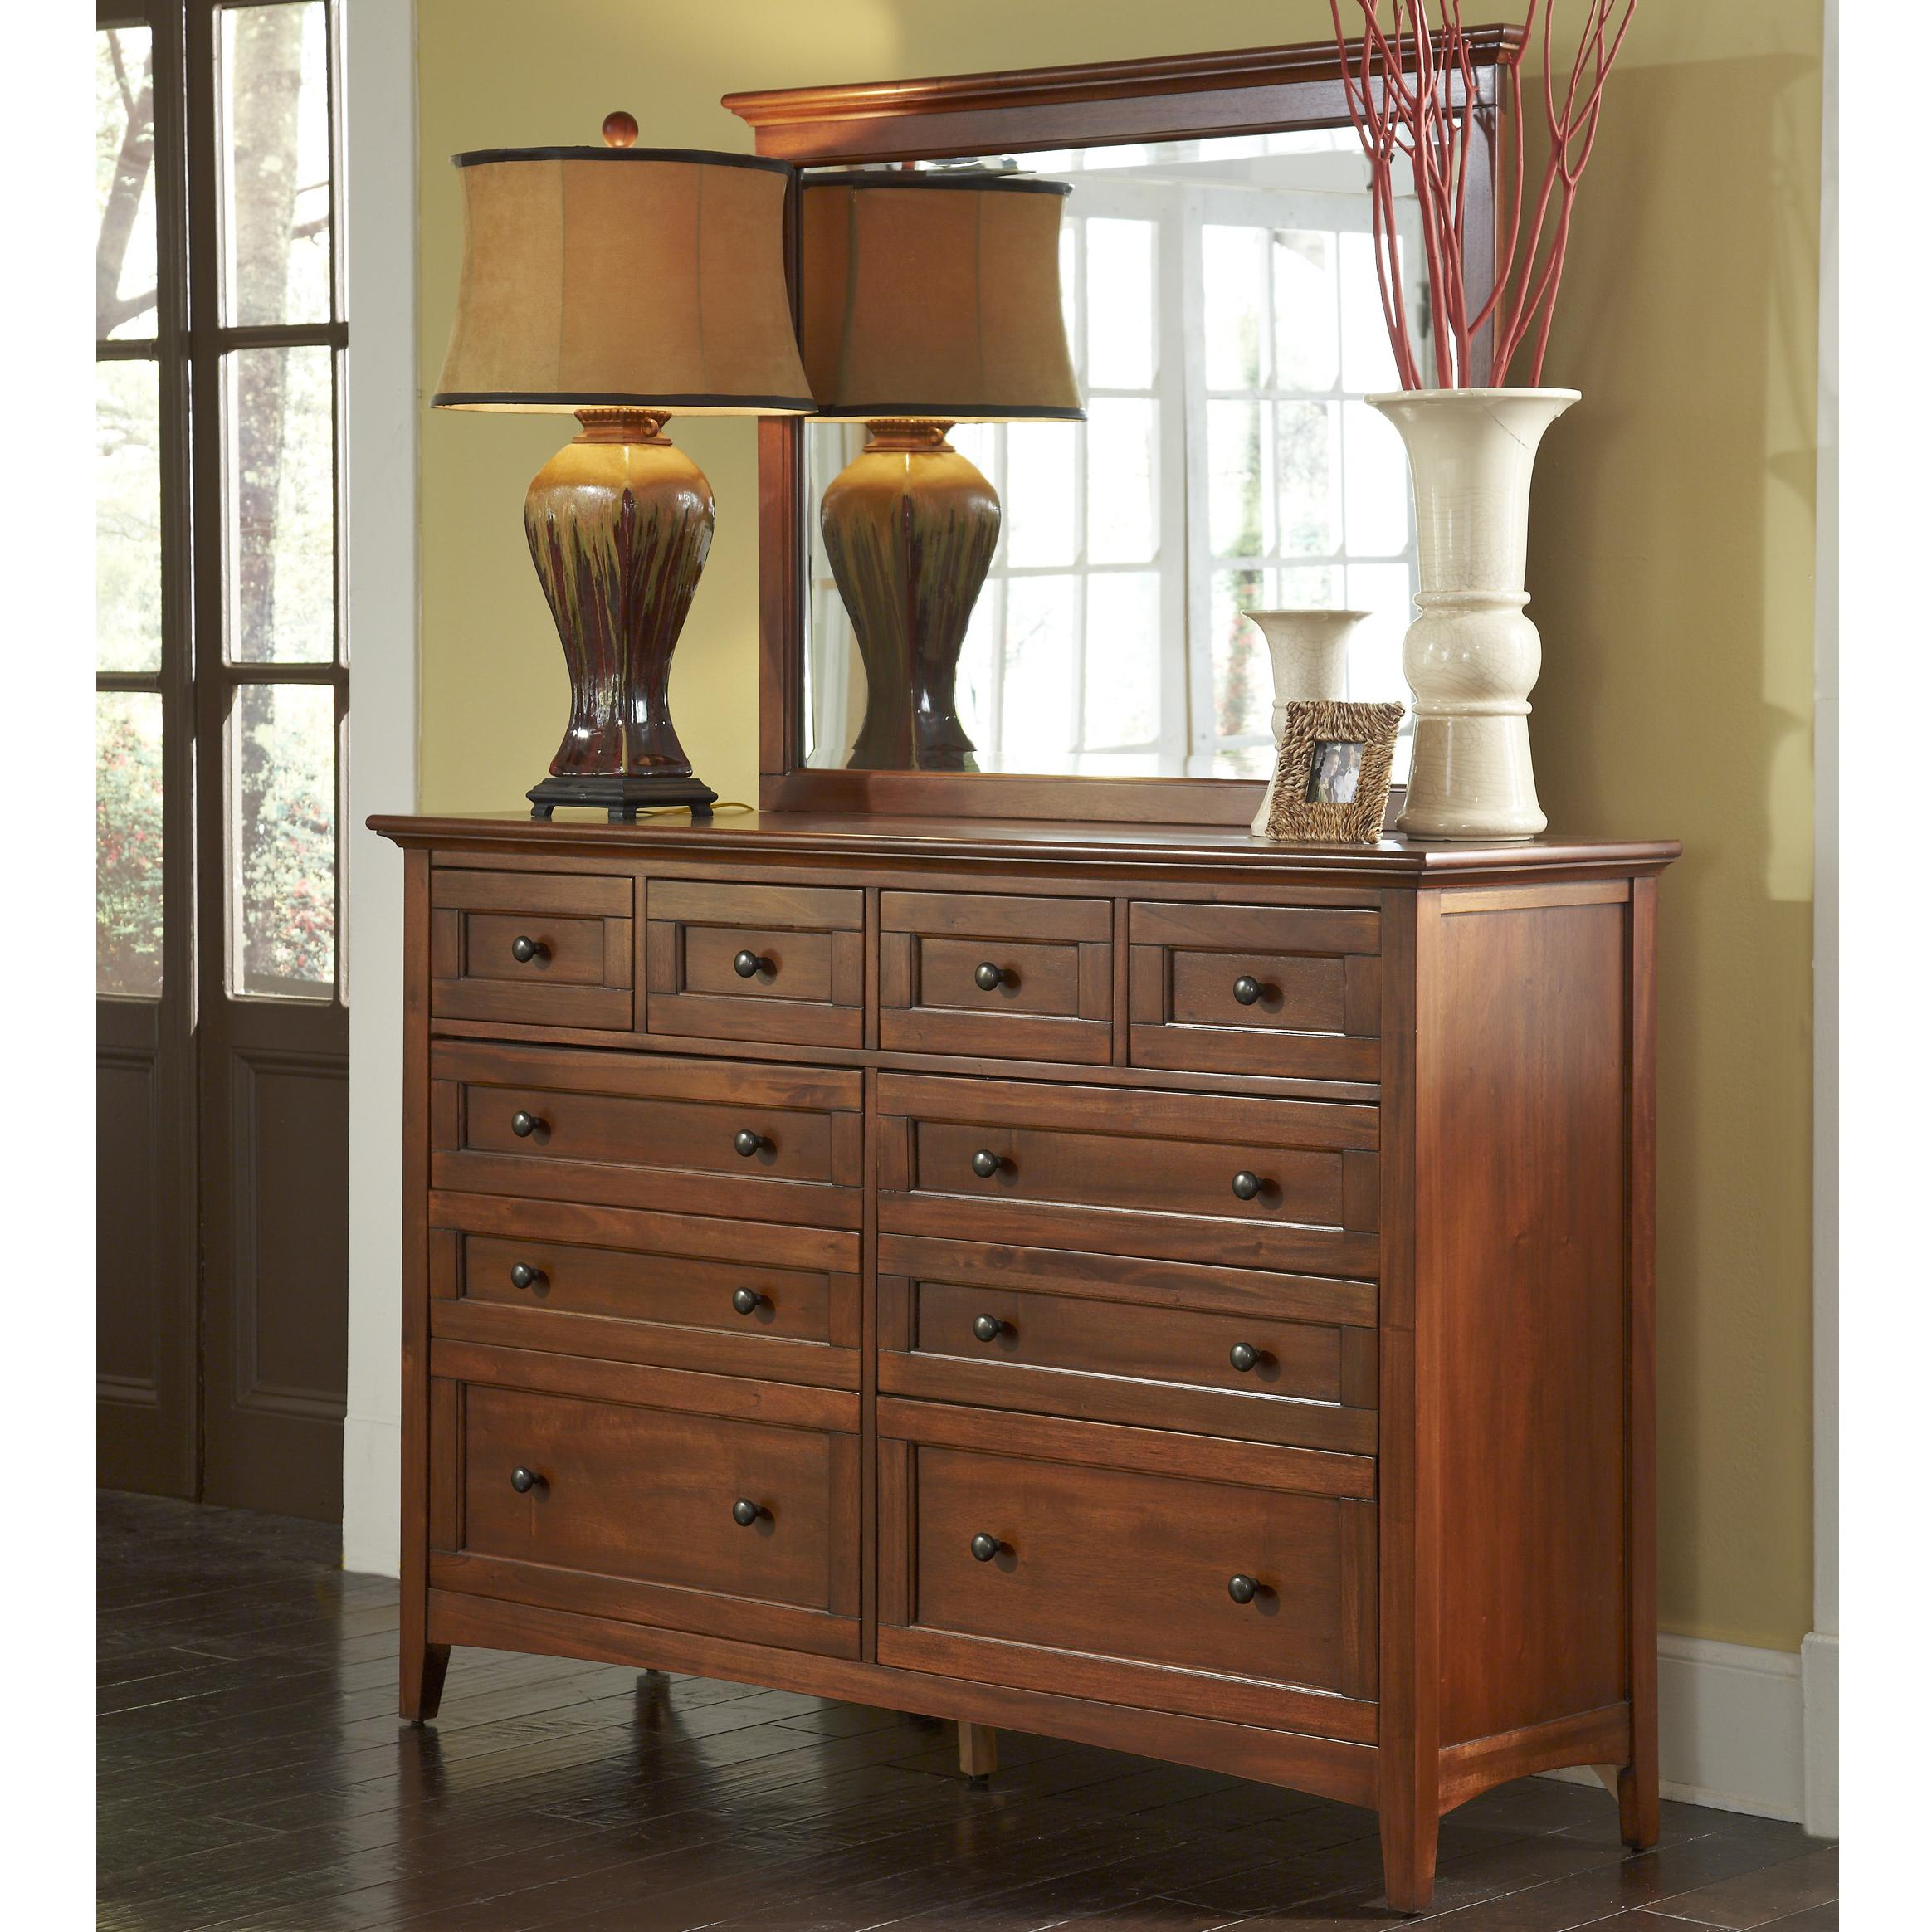 Westlake Dresser and Mirror by A-A at Walker's Furniture